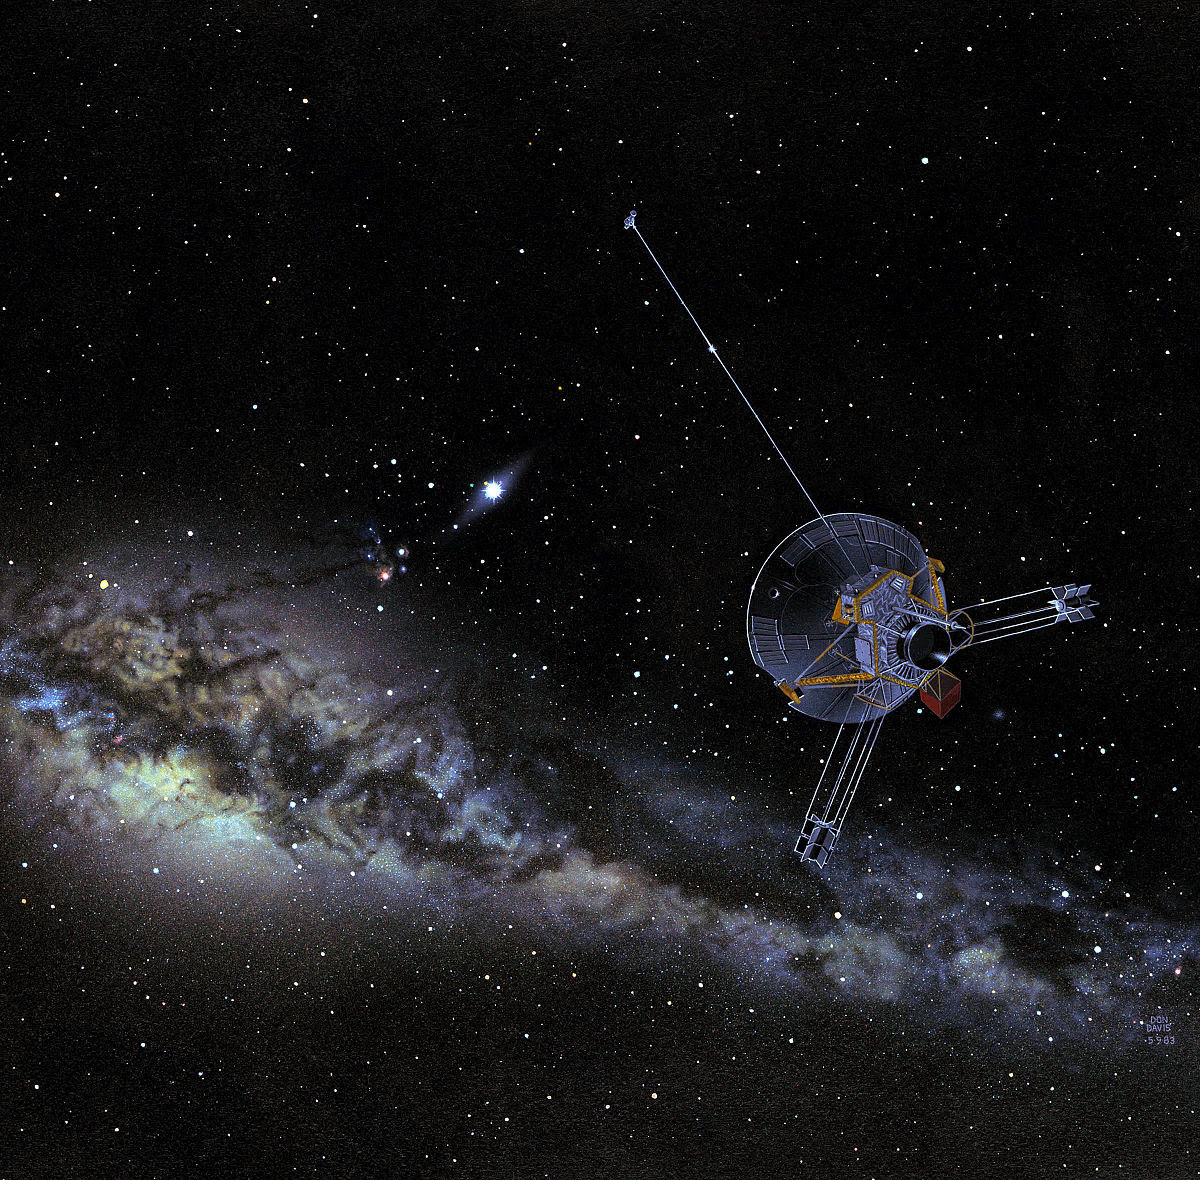 Jul15-1972-Pioneer_10_or_11_in_outer_solar_system